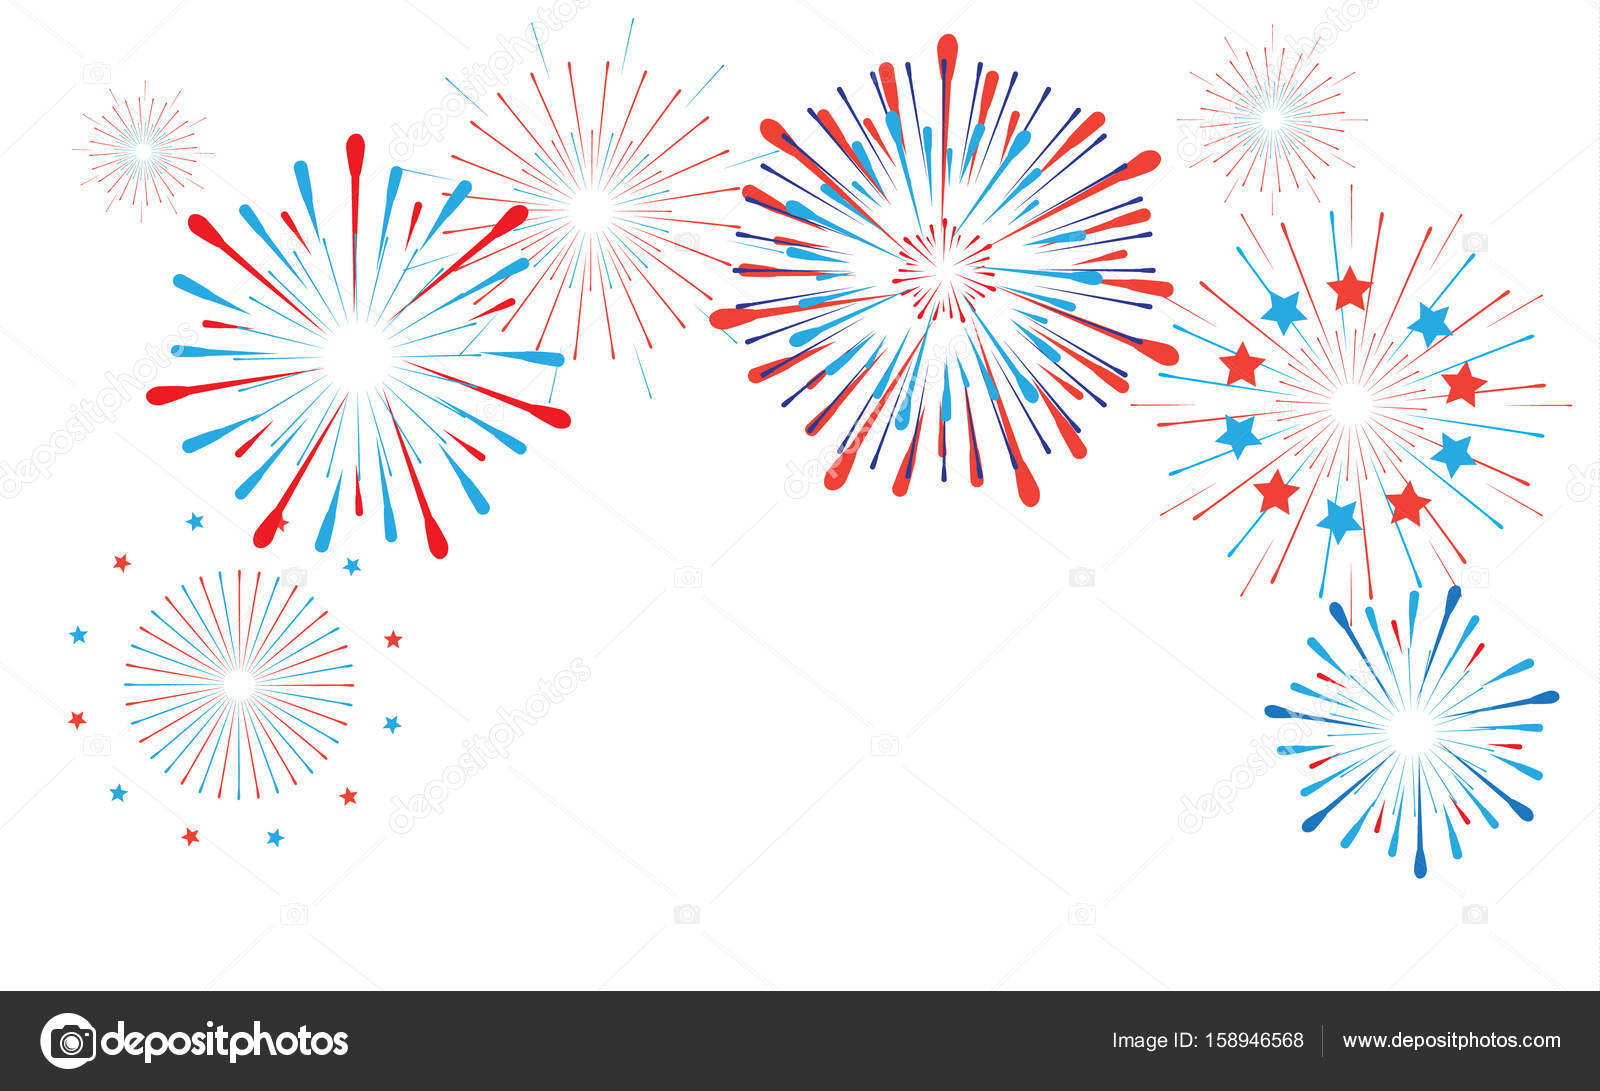 fireworks confetti fire sparklers star burst red and blue color festive background for happy new year celebration 4th of july american national